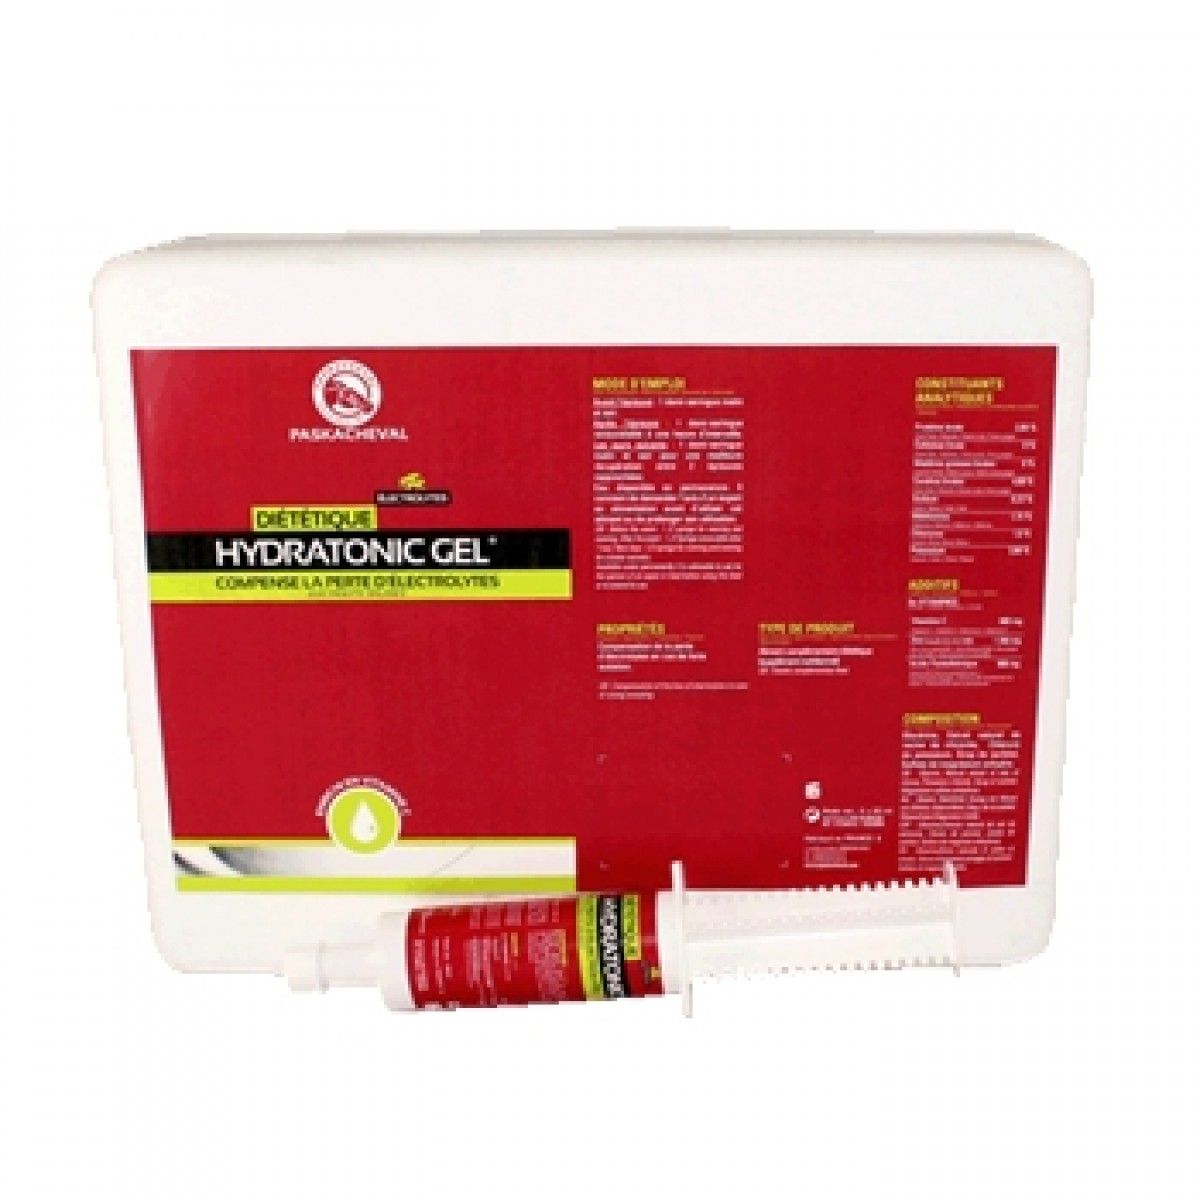 Paskacheval Hydratonic gel 60 ml